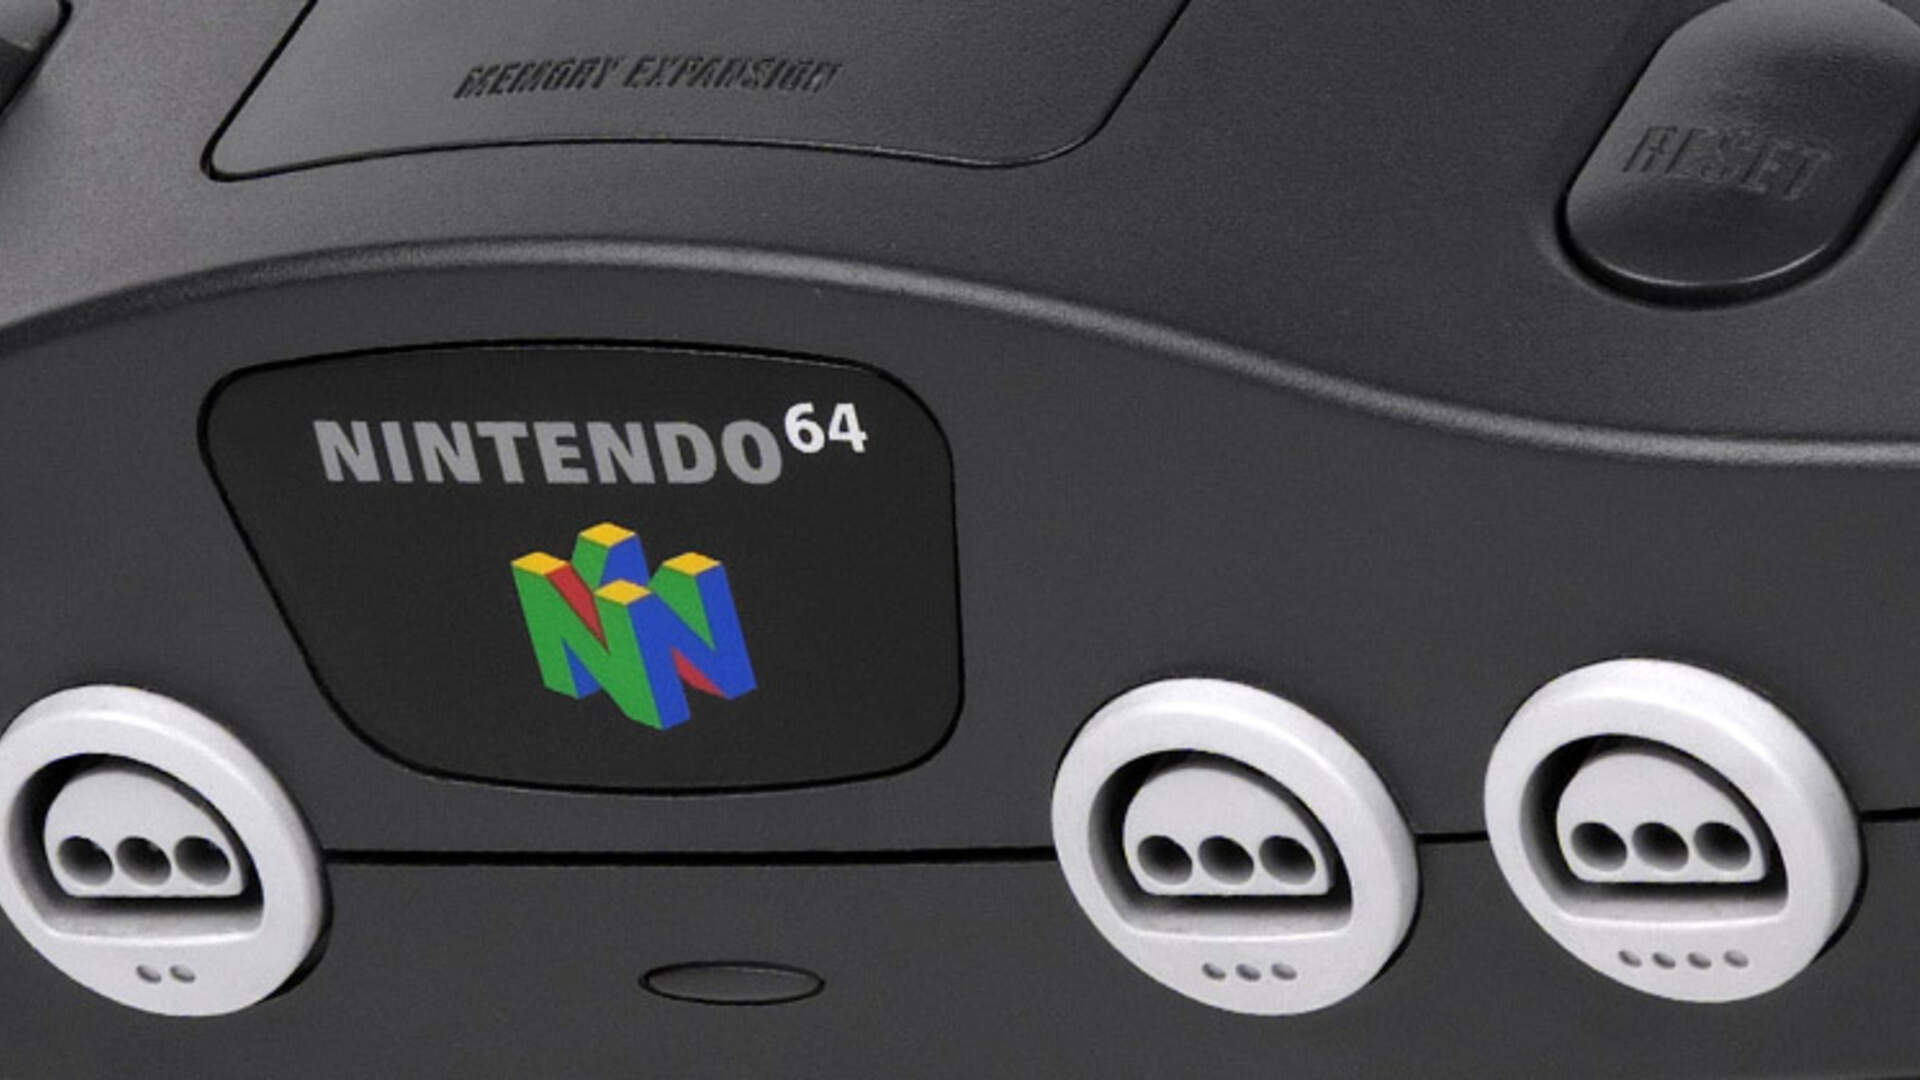 Nintendo 64: Was It Phenomenal or was it A Flop?